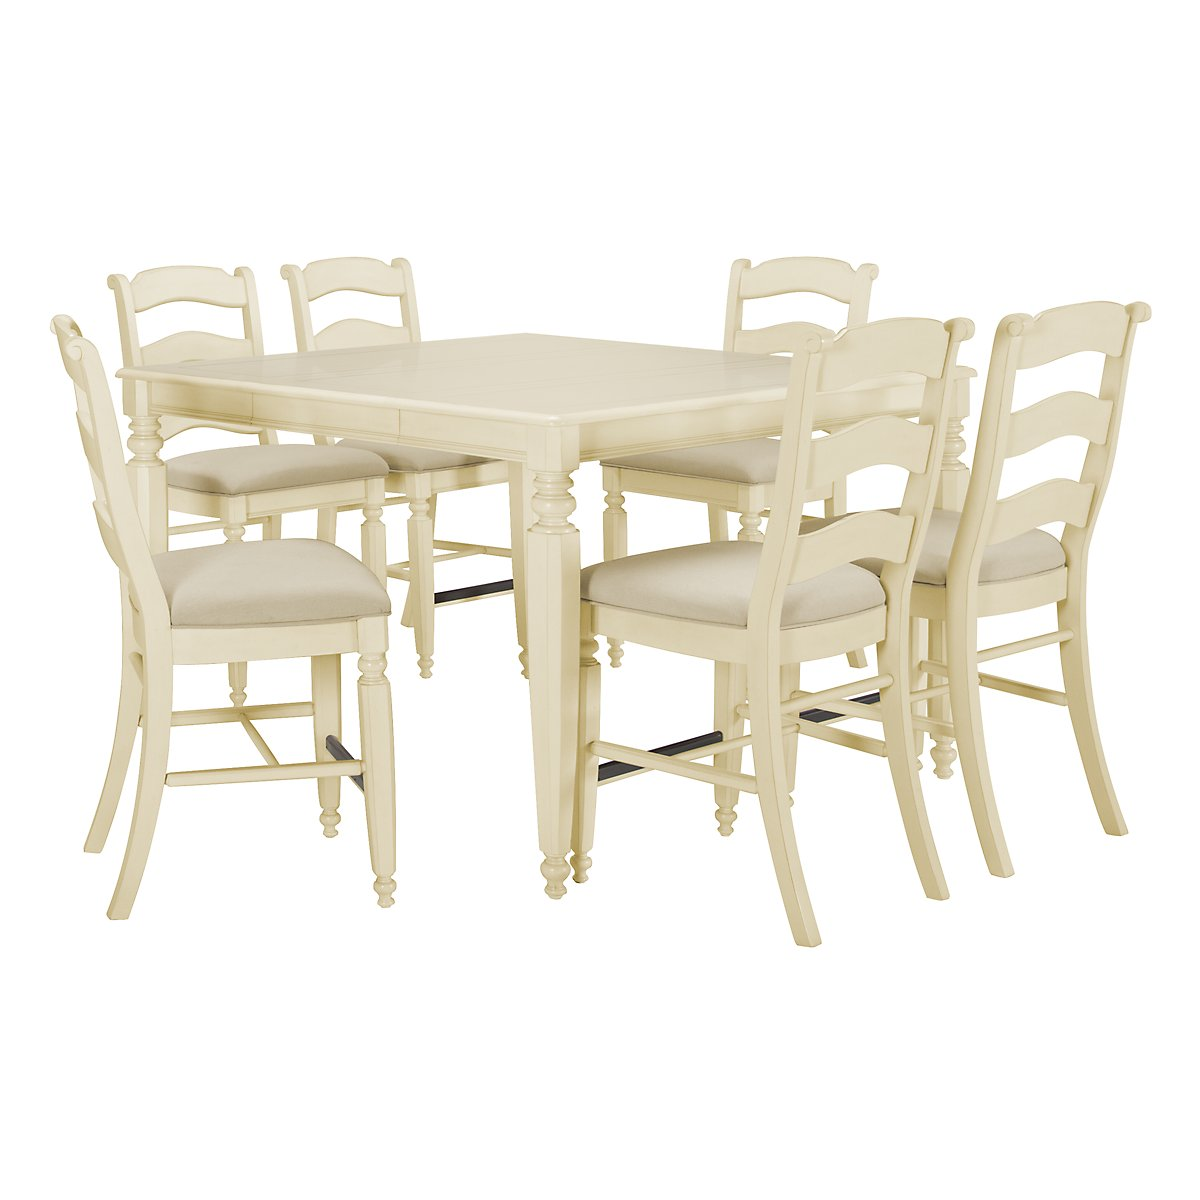 Claire White High Table & 4 Wood Barstools